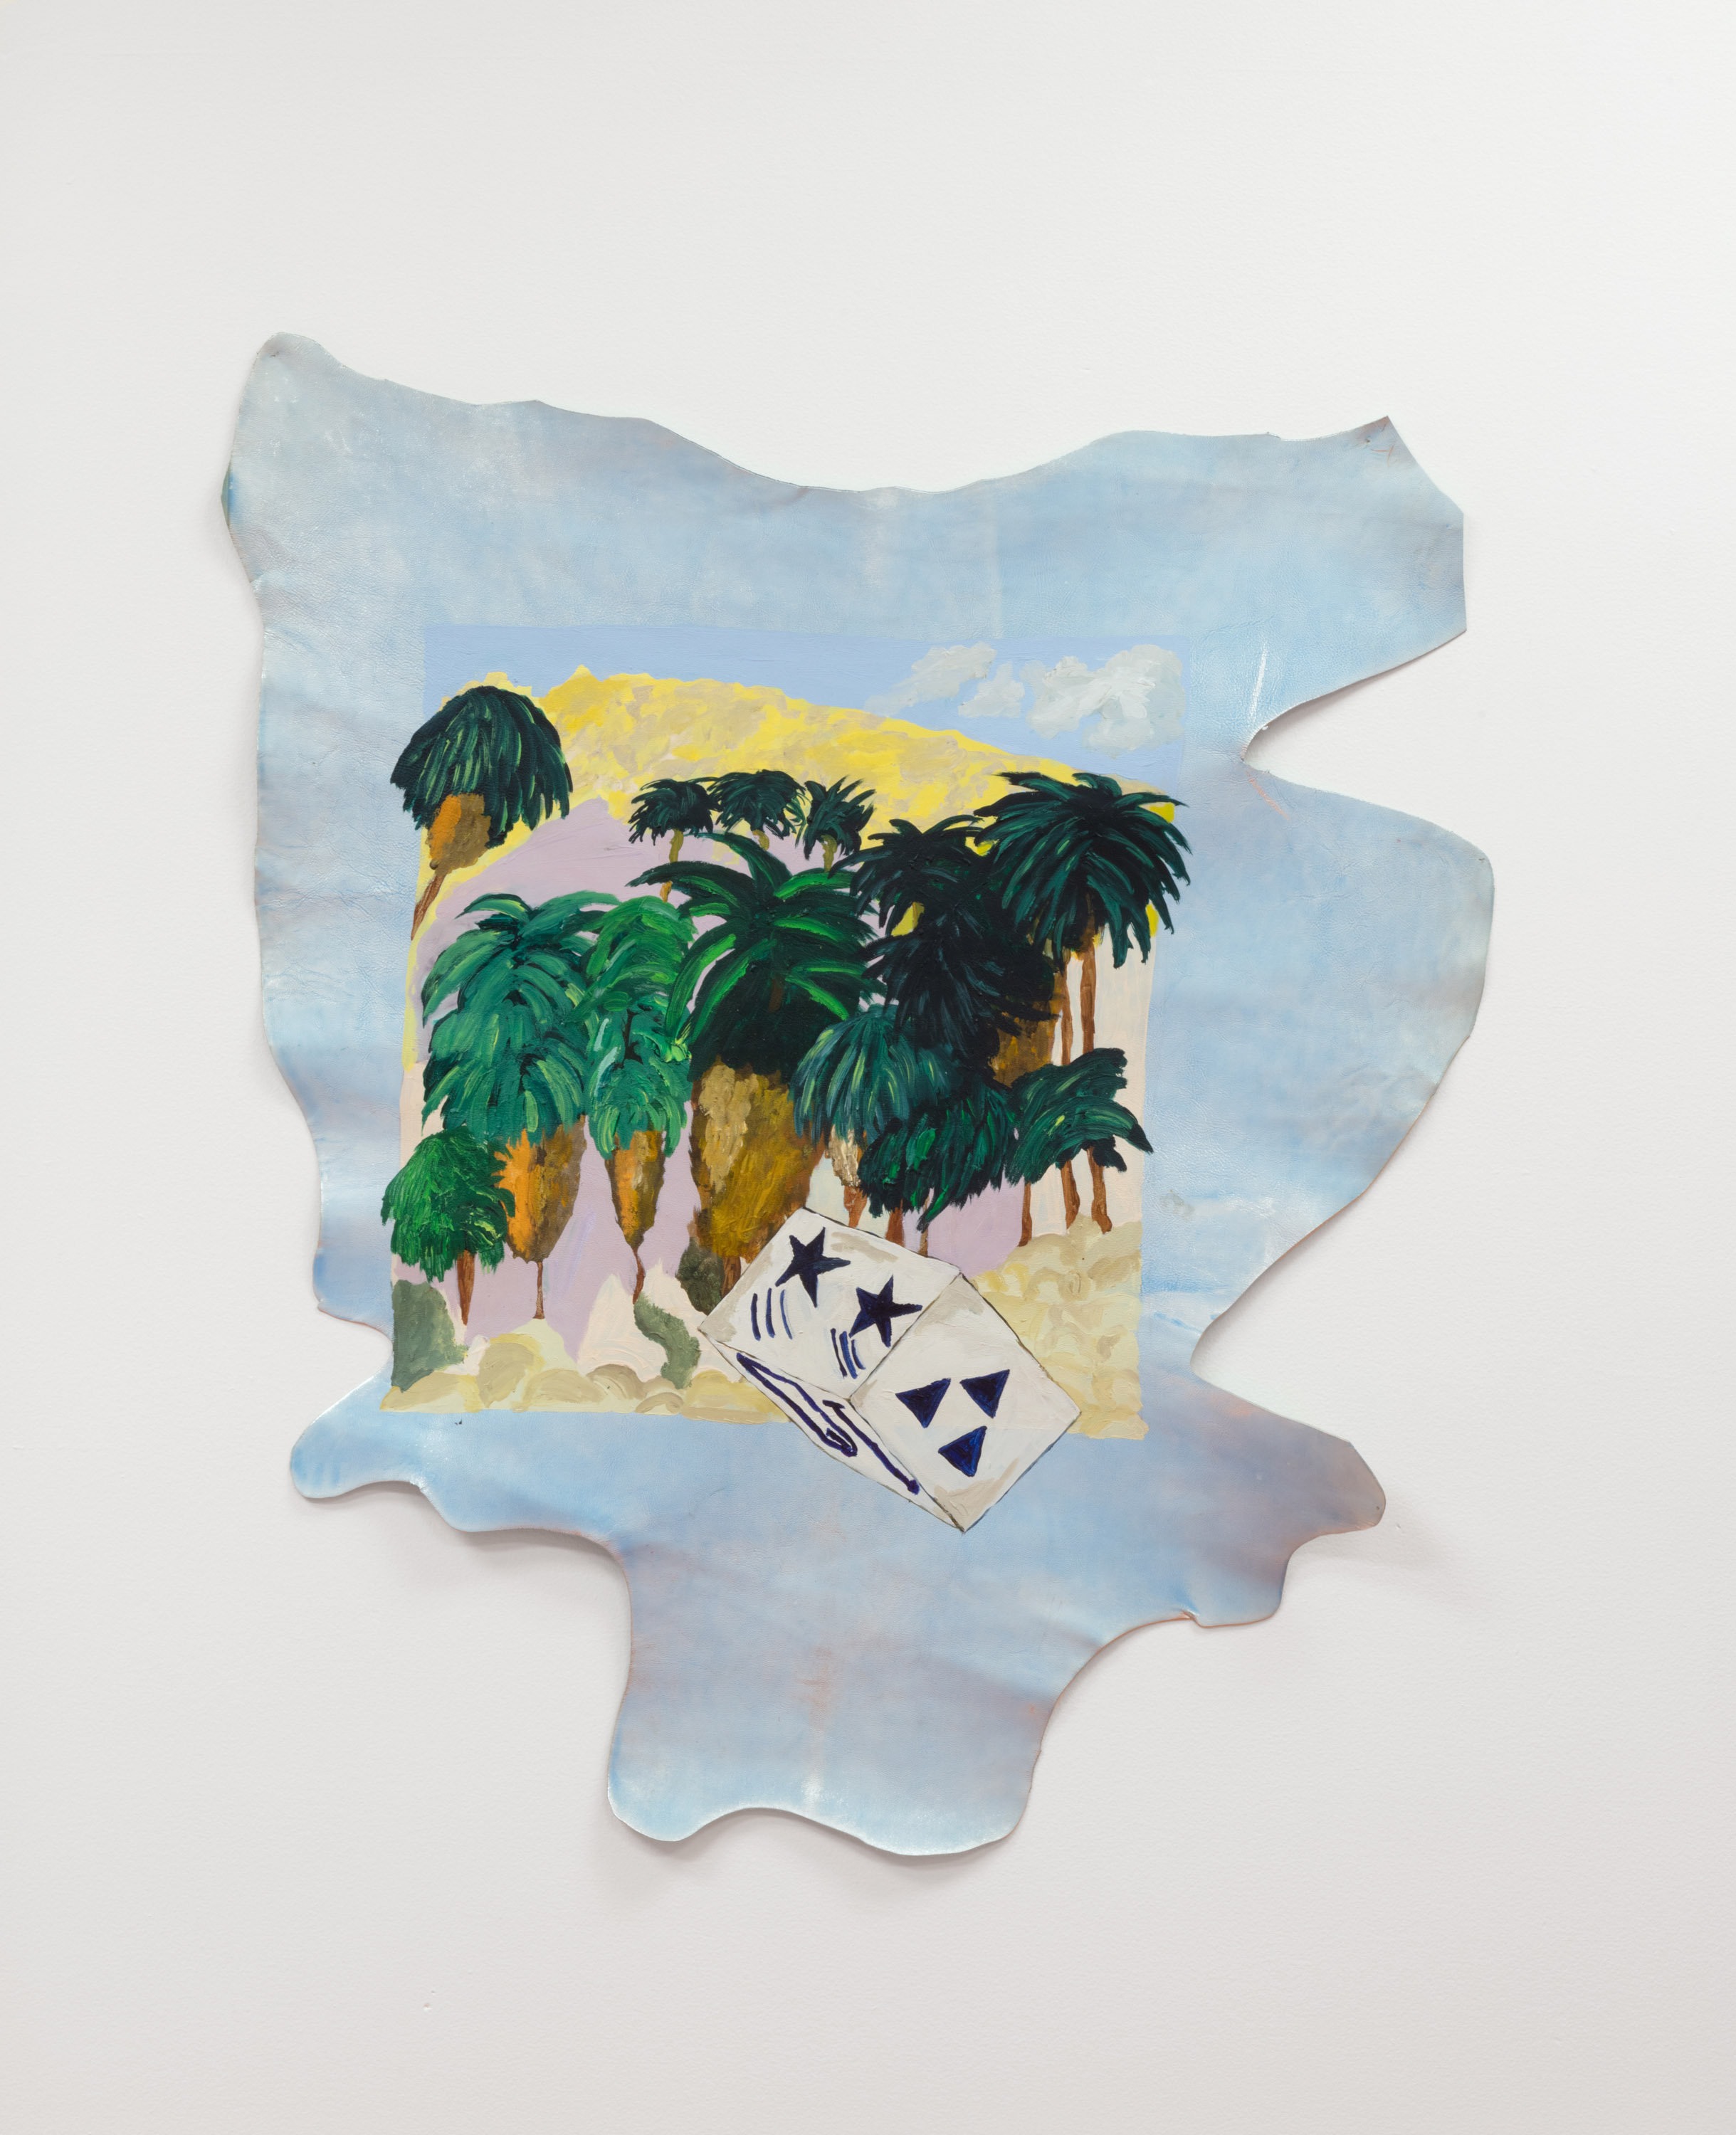 Micah Wood,  29 Palms Oasis , 2019, acrylic on leather, 36 x 29 inches